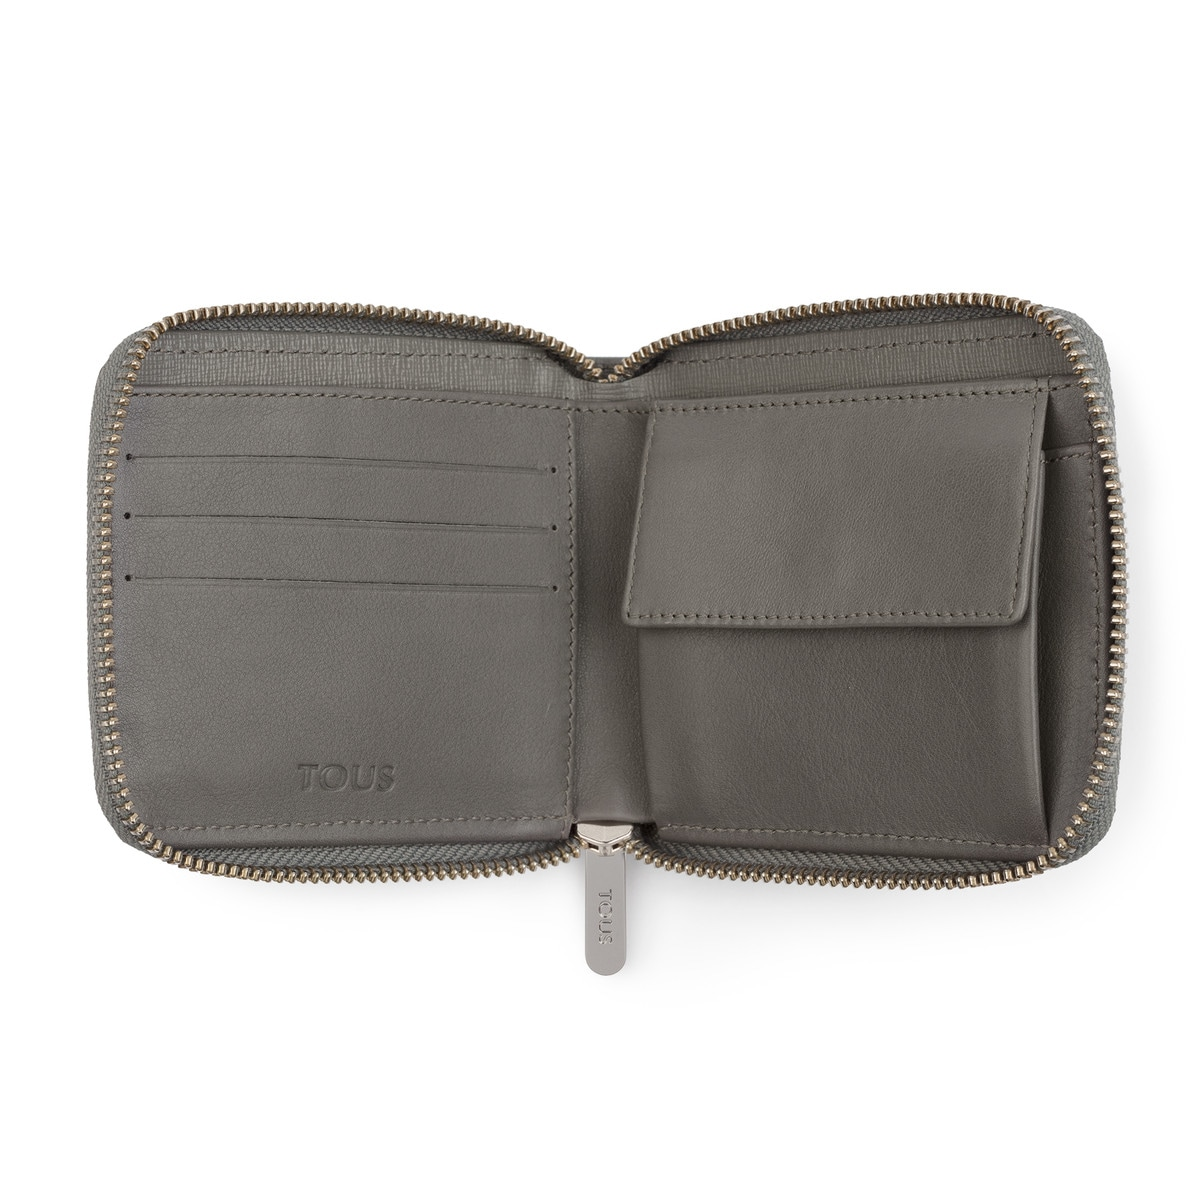 Cartera New Berlin de Pell de color gris